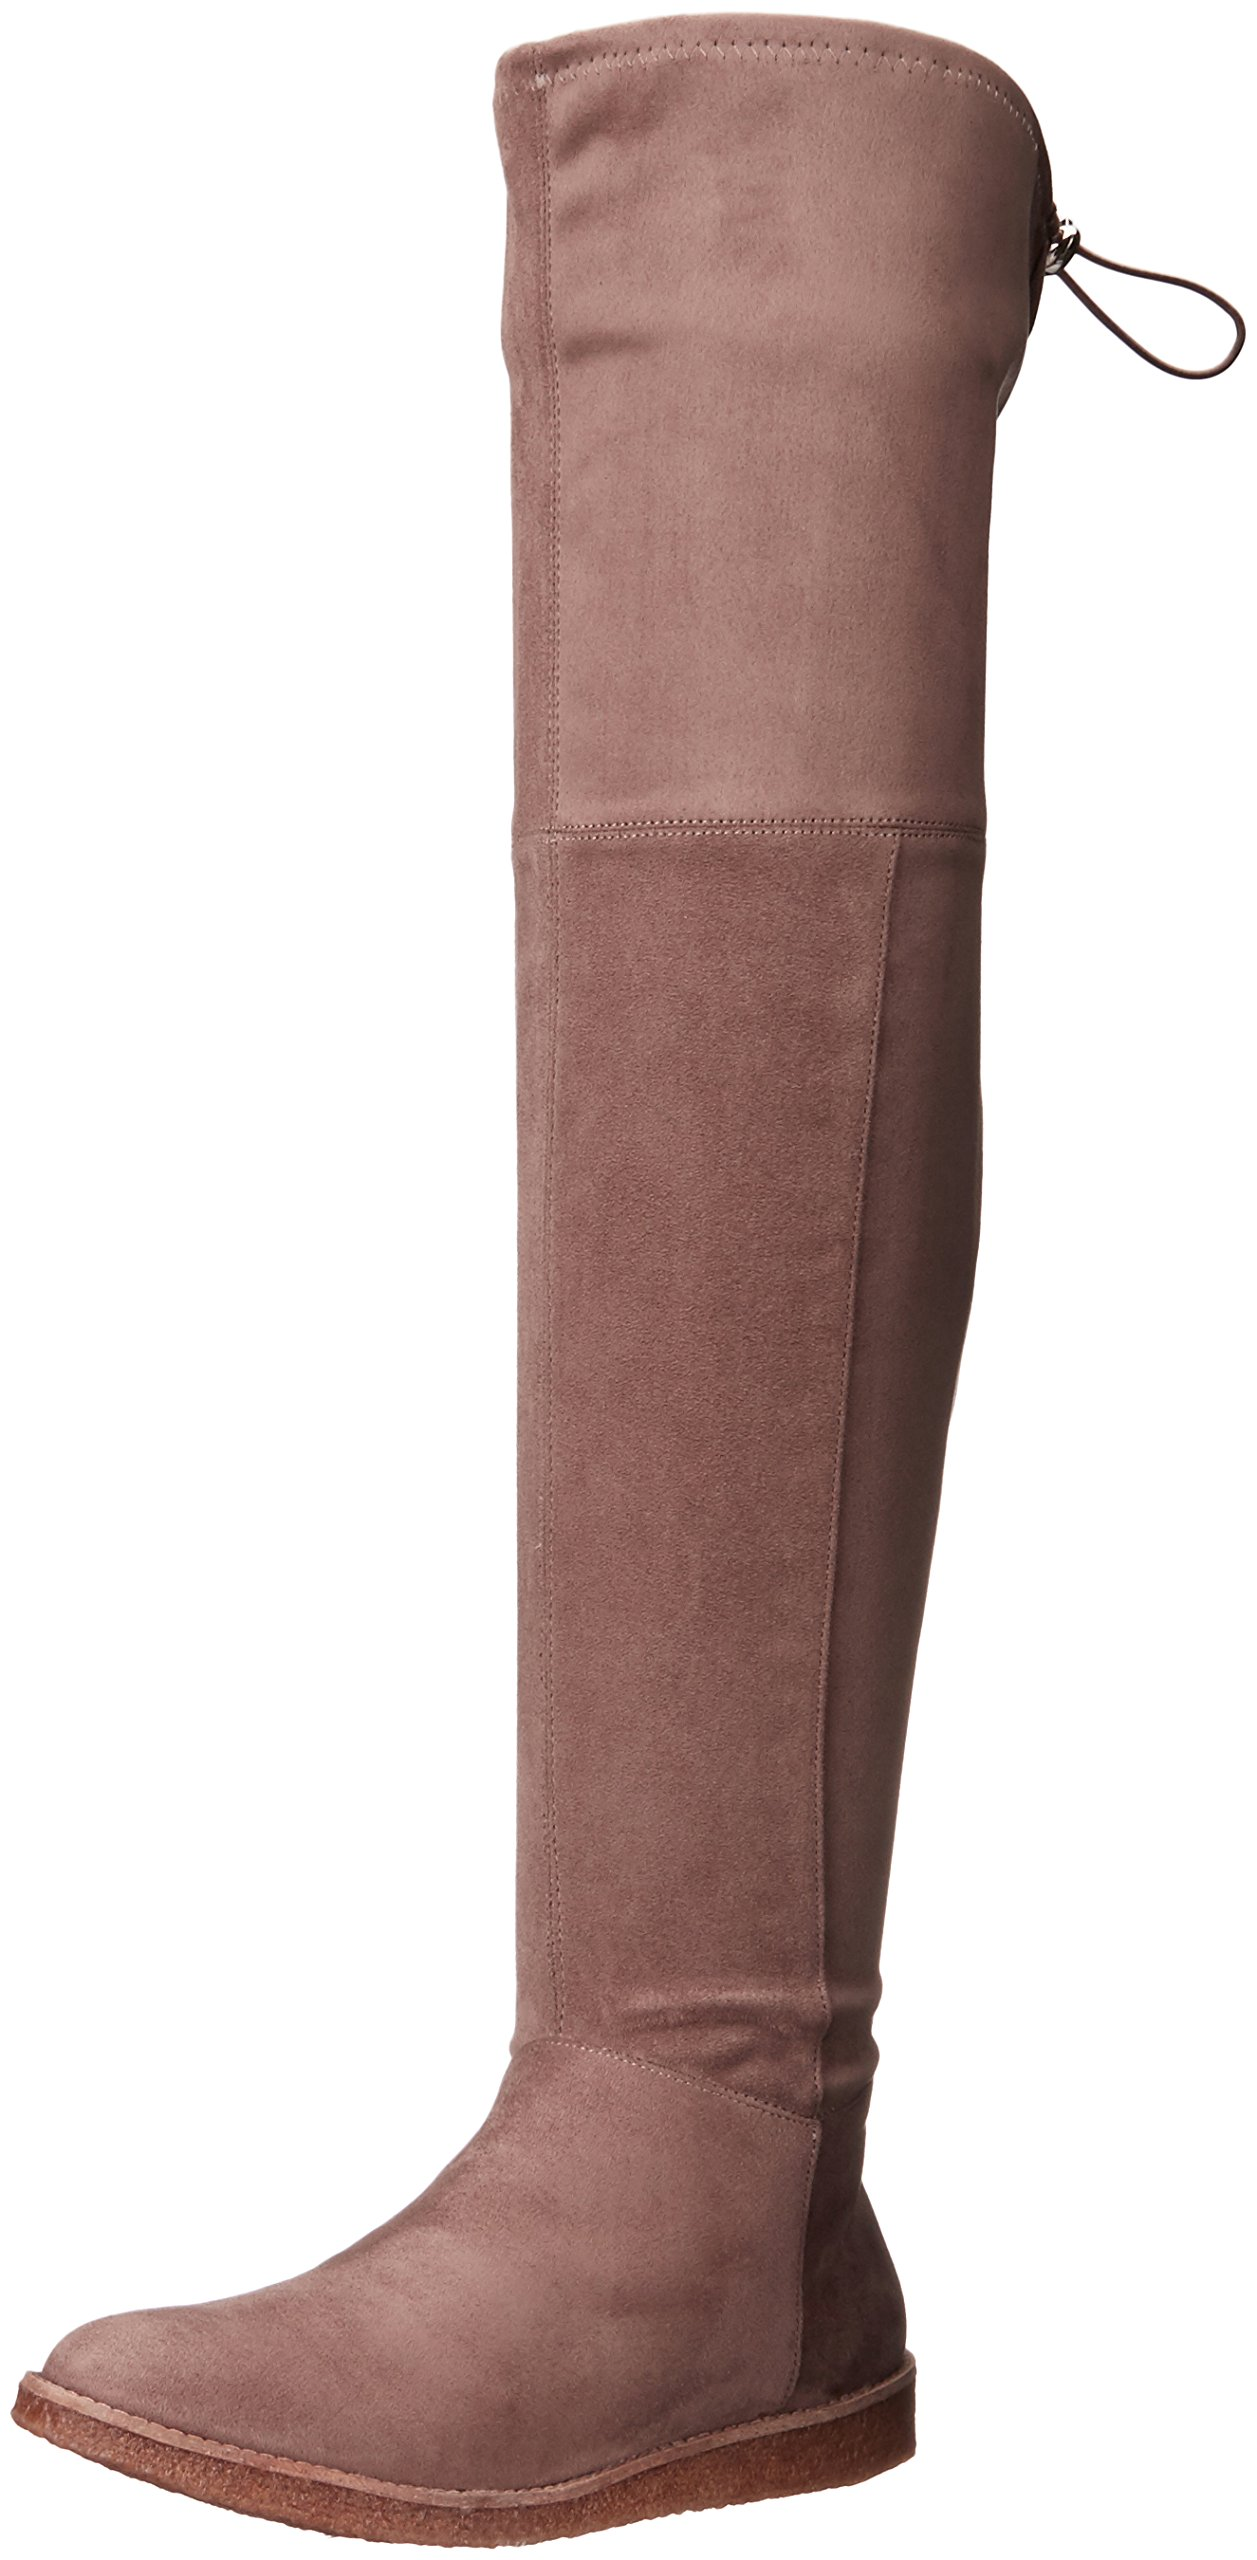 BCBGeneration Women's Brennan Slouch Boot, Taupe, 7 M US